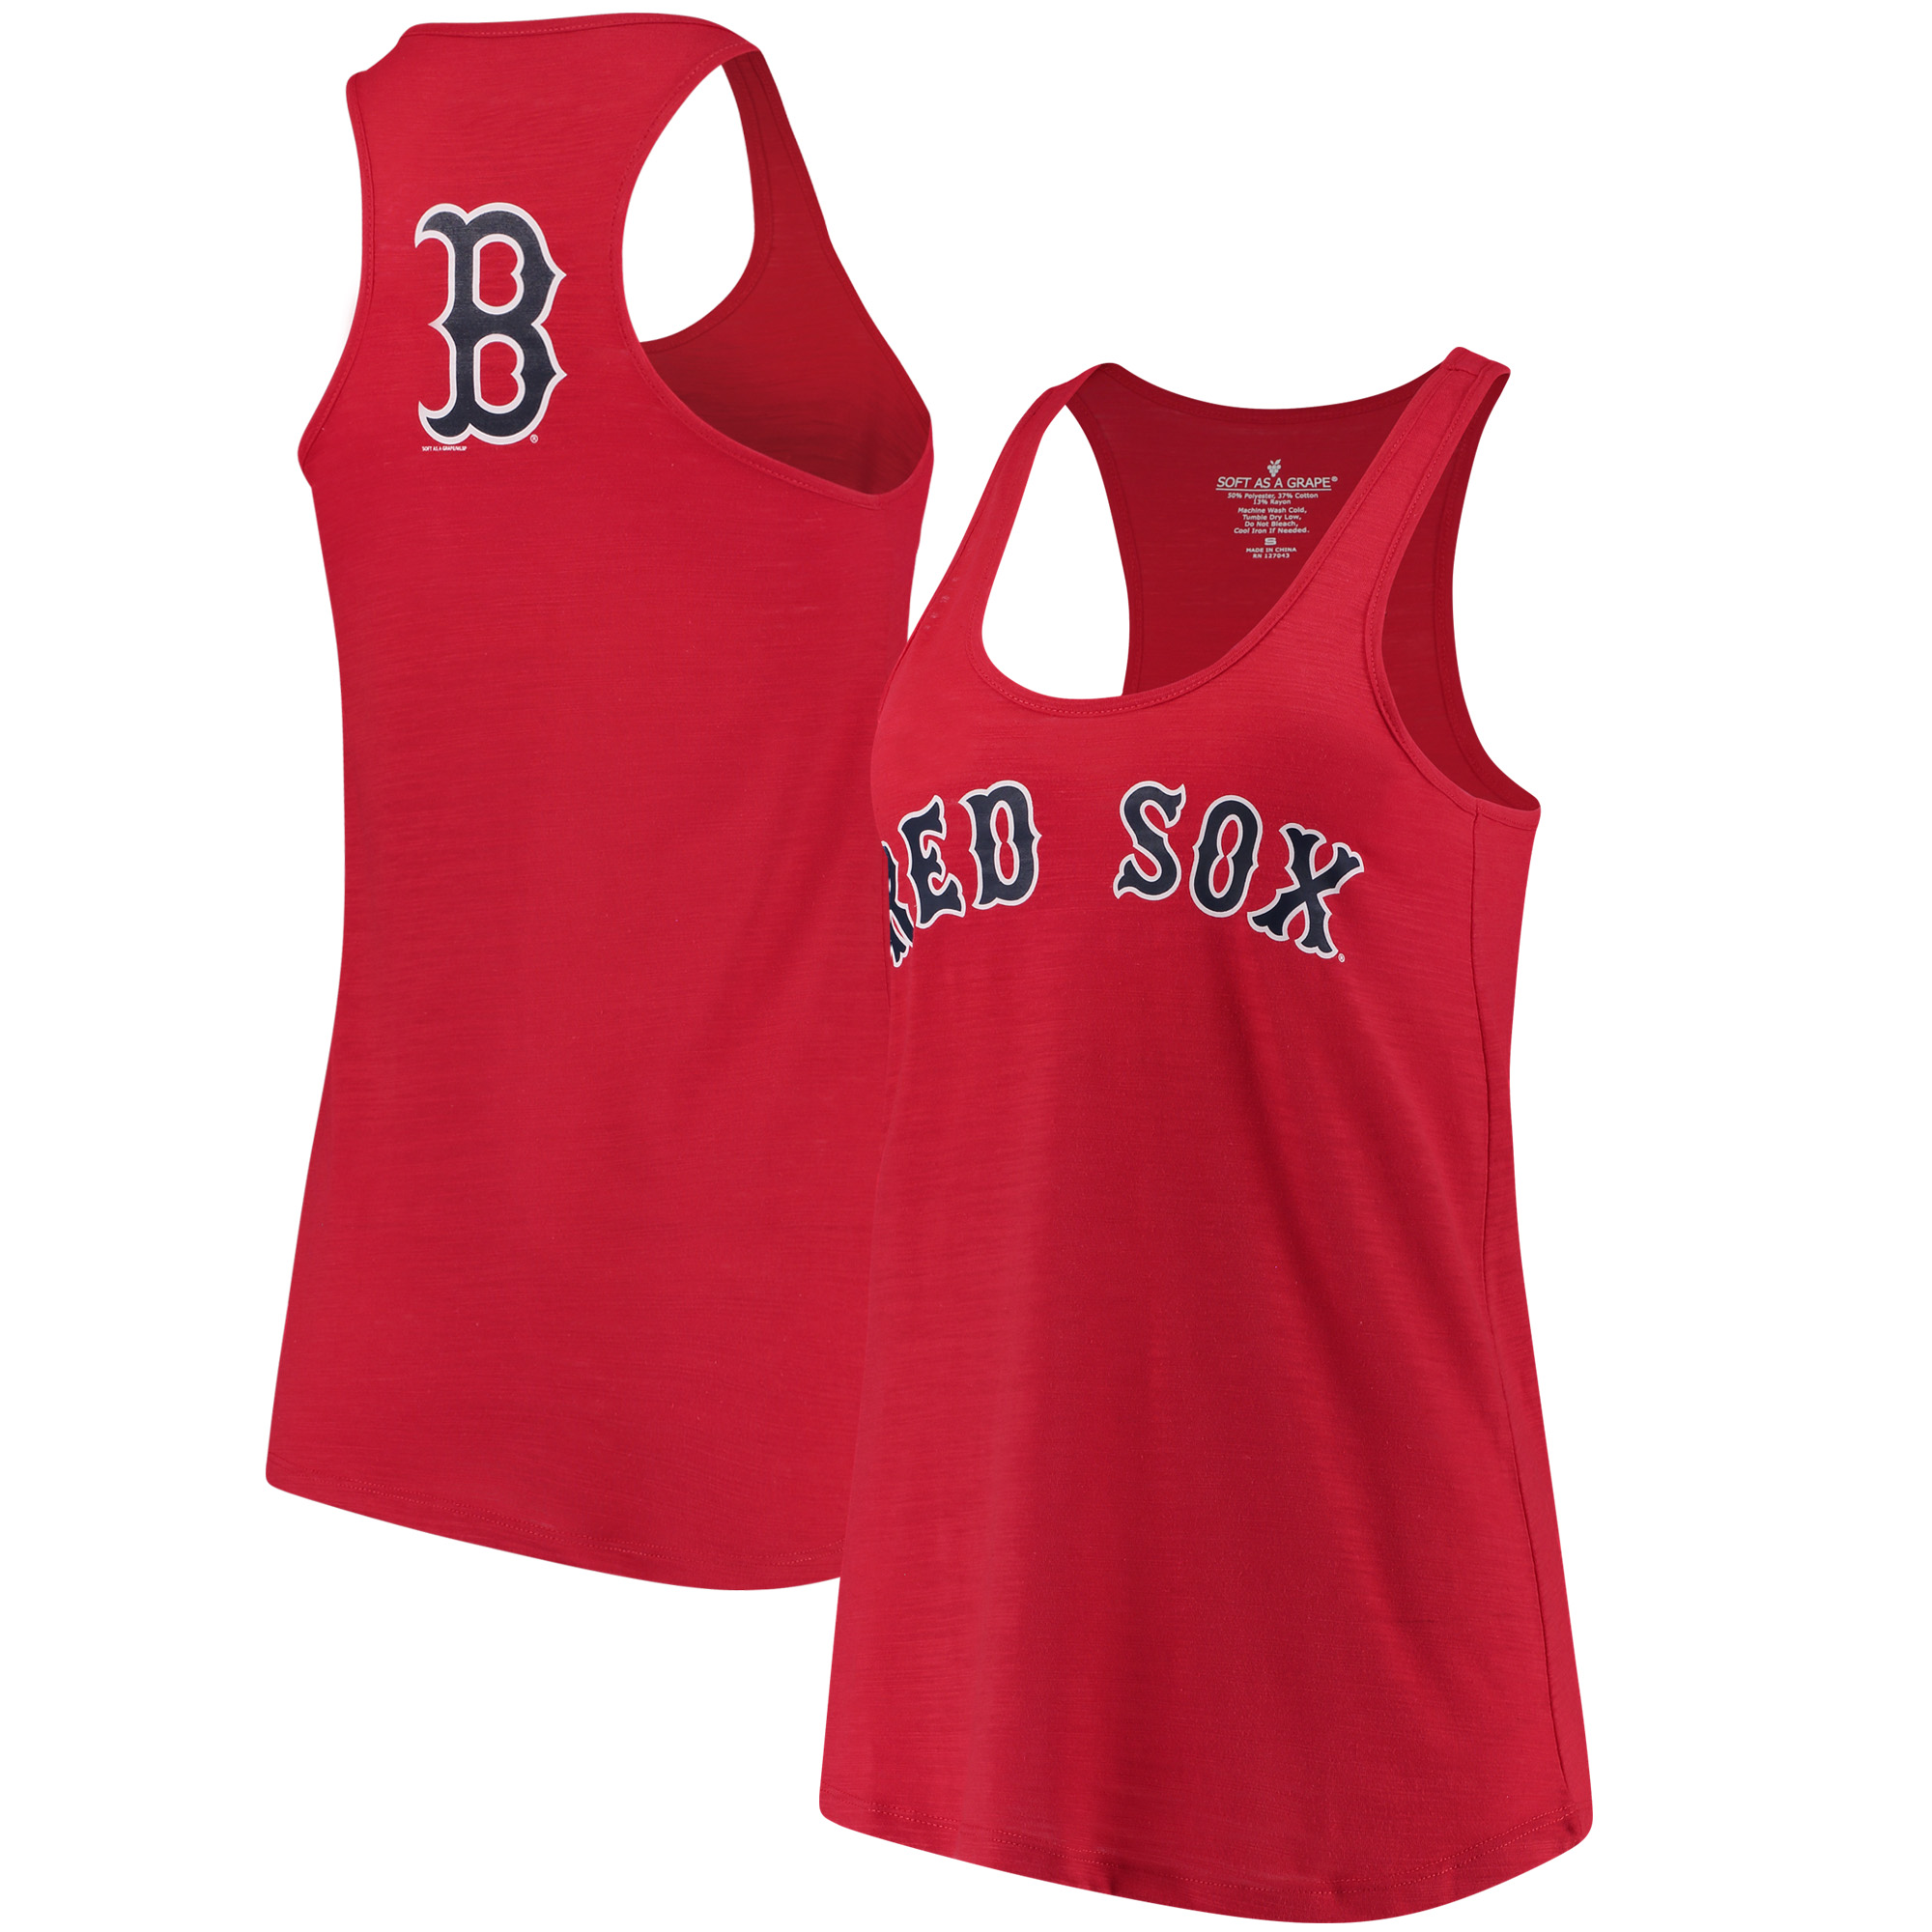 Boston Red Sox Soft As A Grape Women's Front & Back Tri-Blend Racerback Tank Top - Red